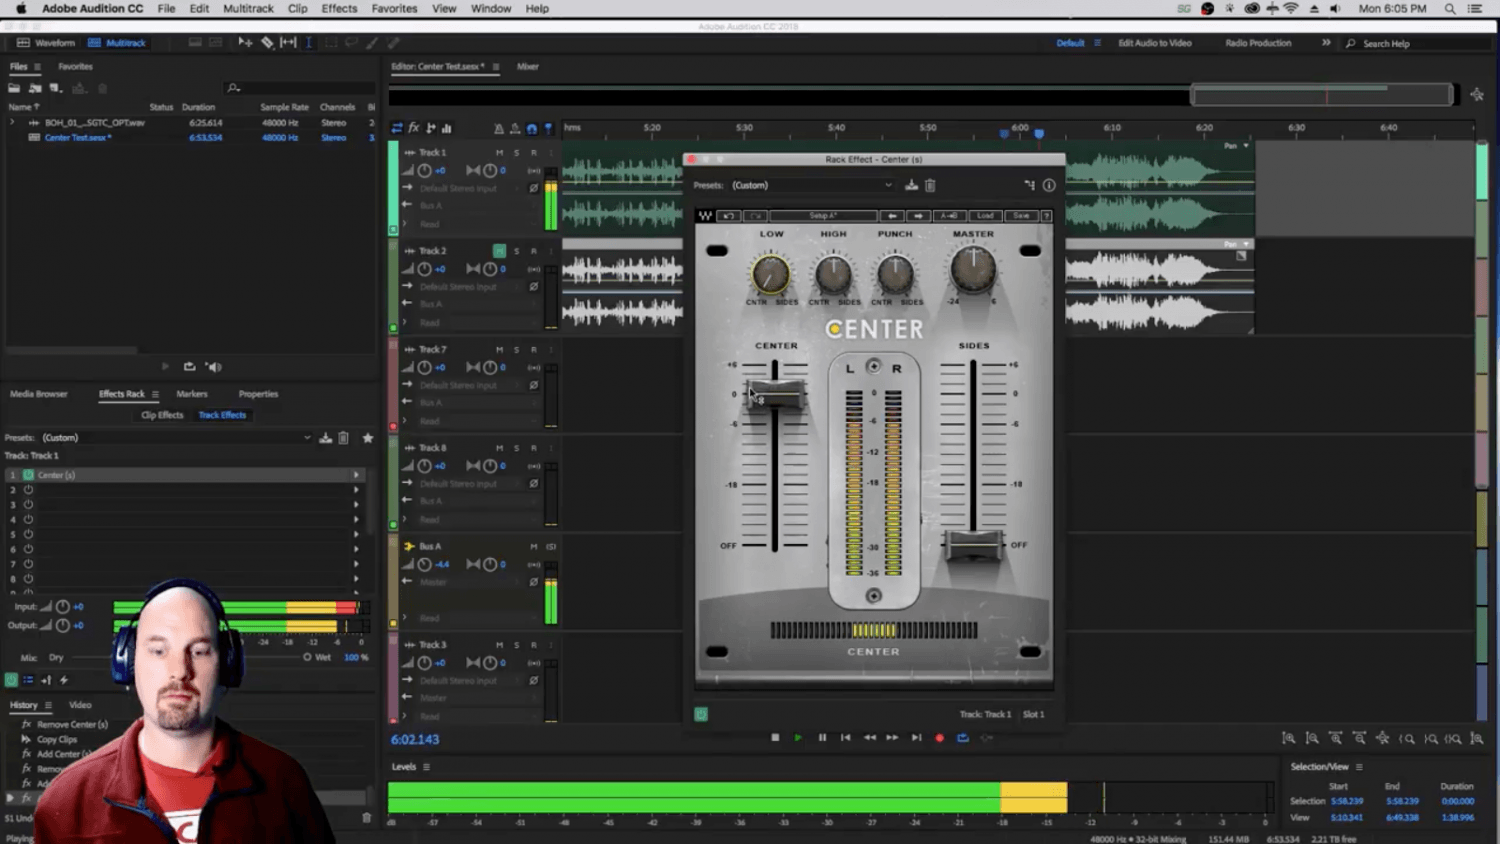 The Music Mastering Trick to Great Post Audio with Waves Audio